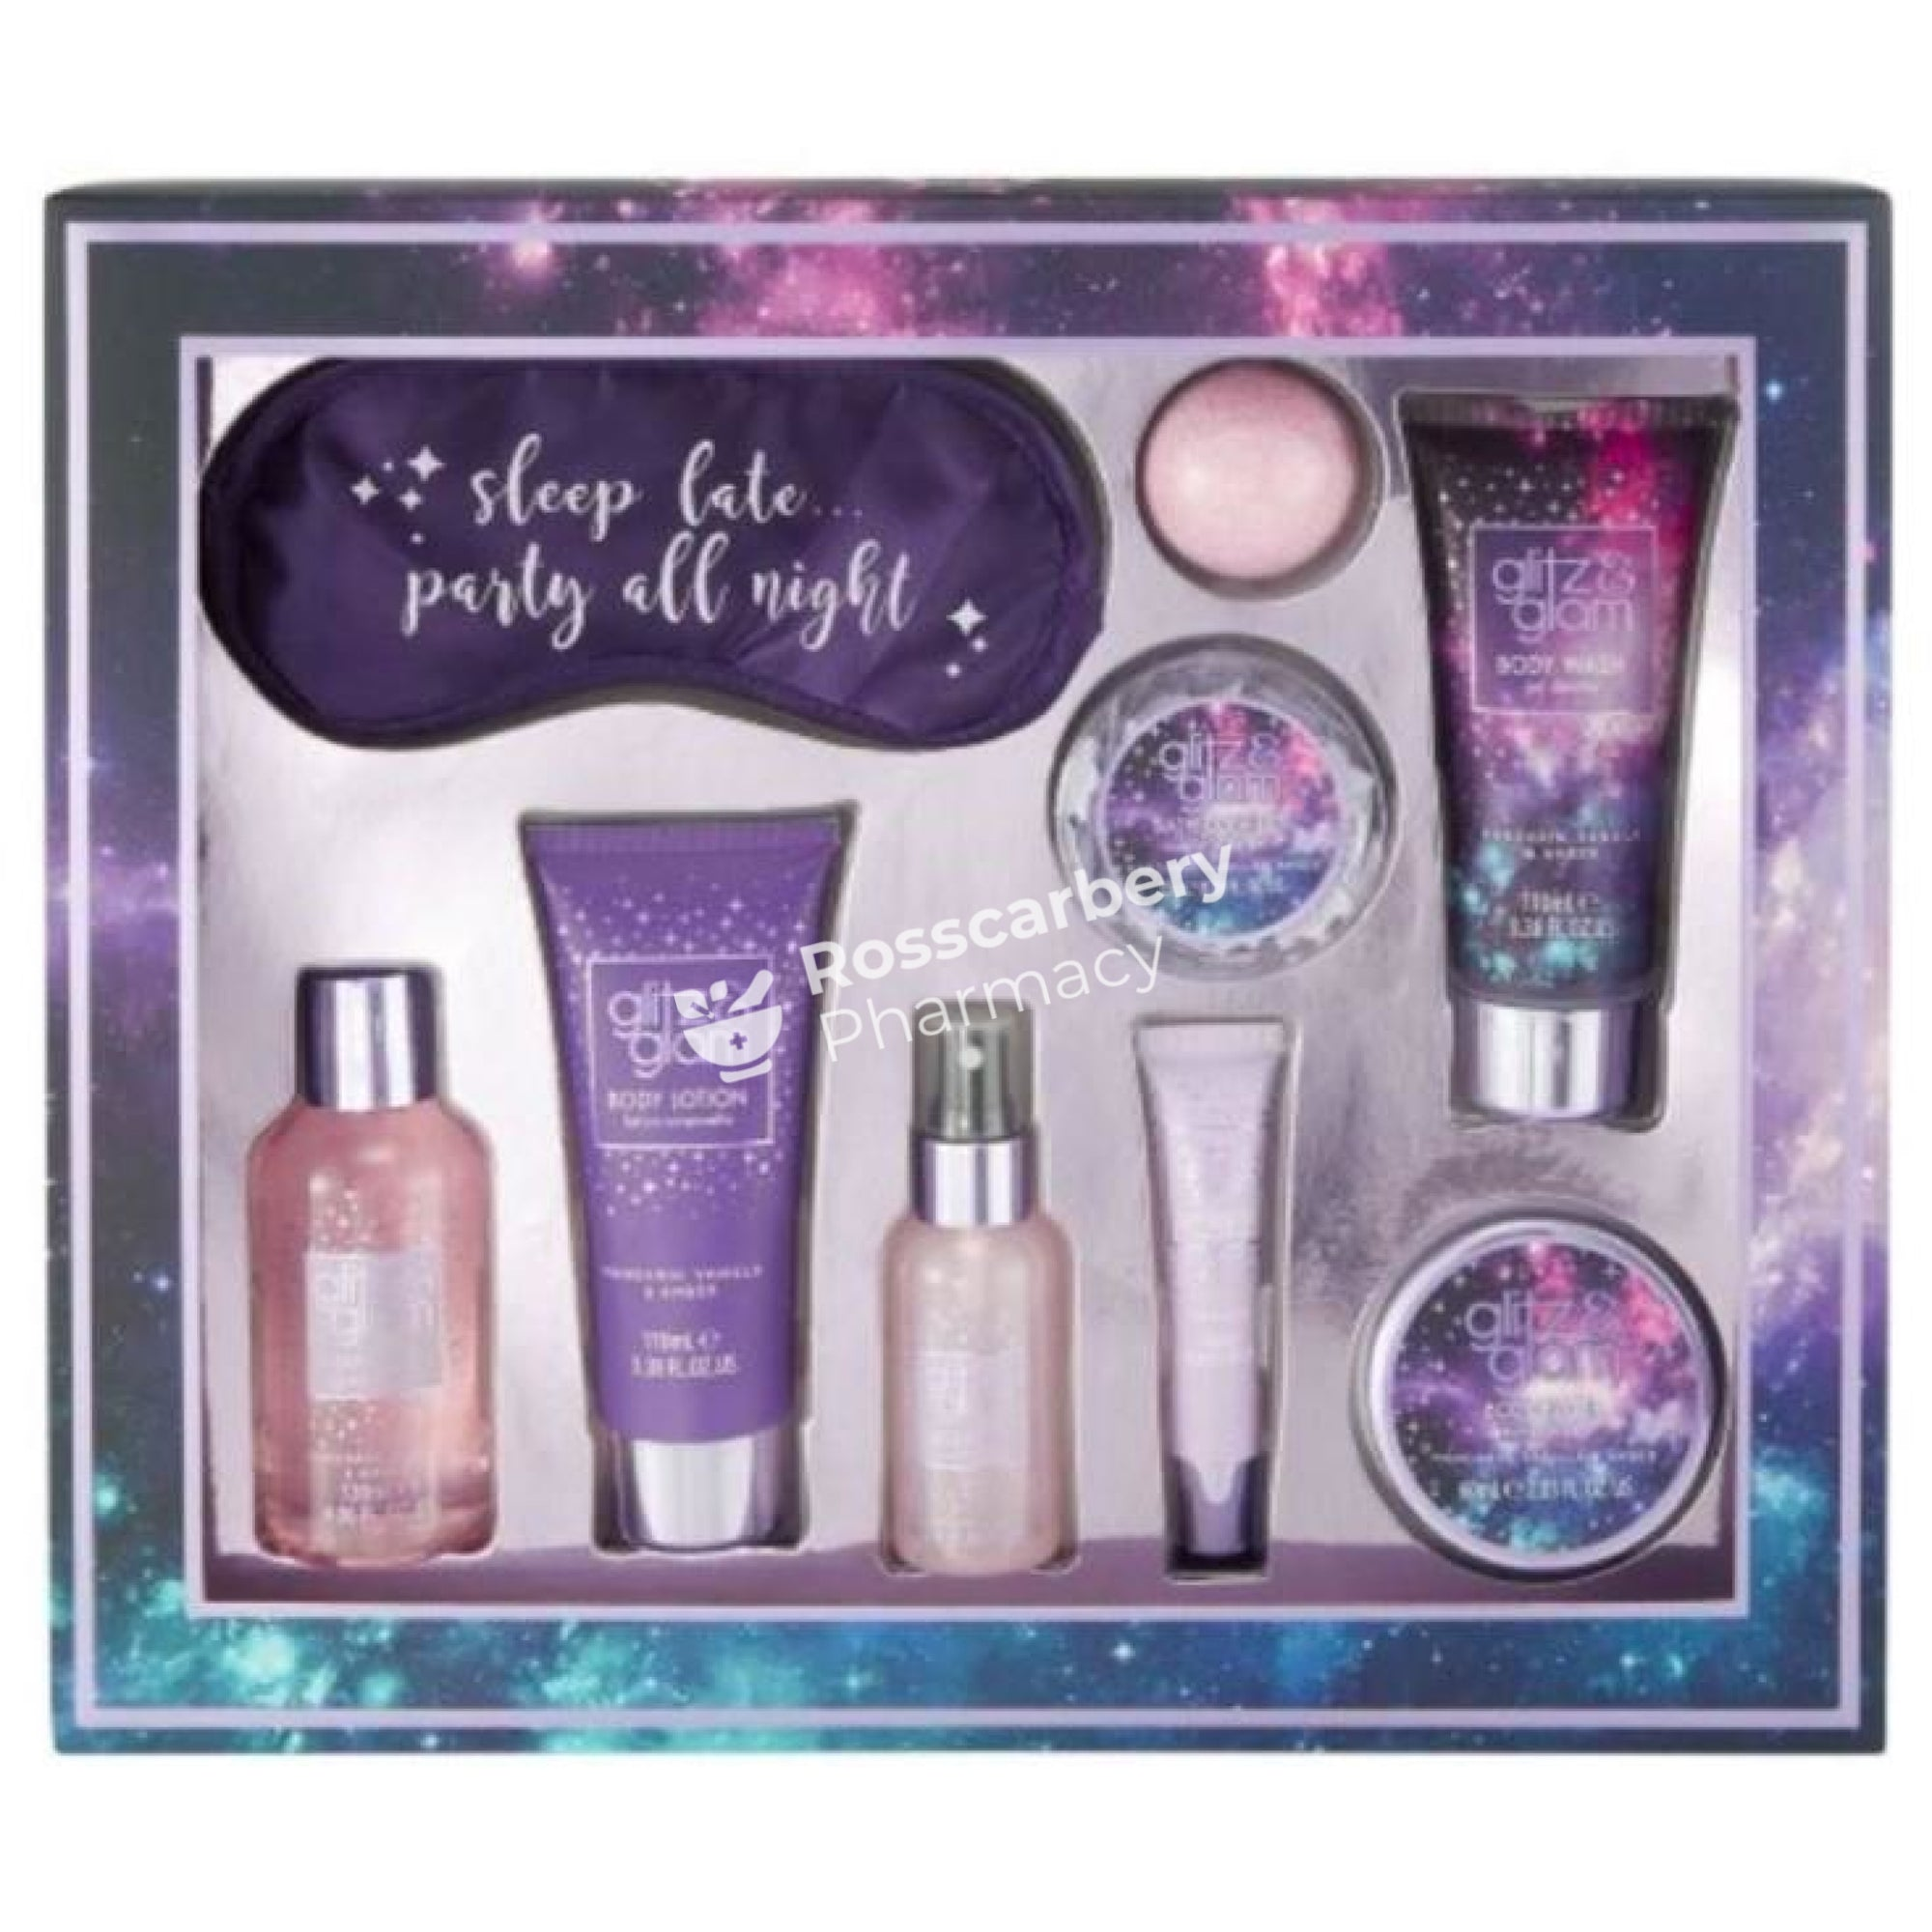 Glitz And Glam Sleep Late.... Gift Set 9Pc Skin & Bath Sets